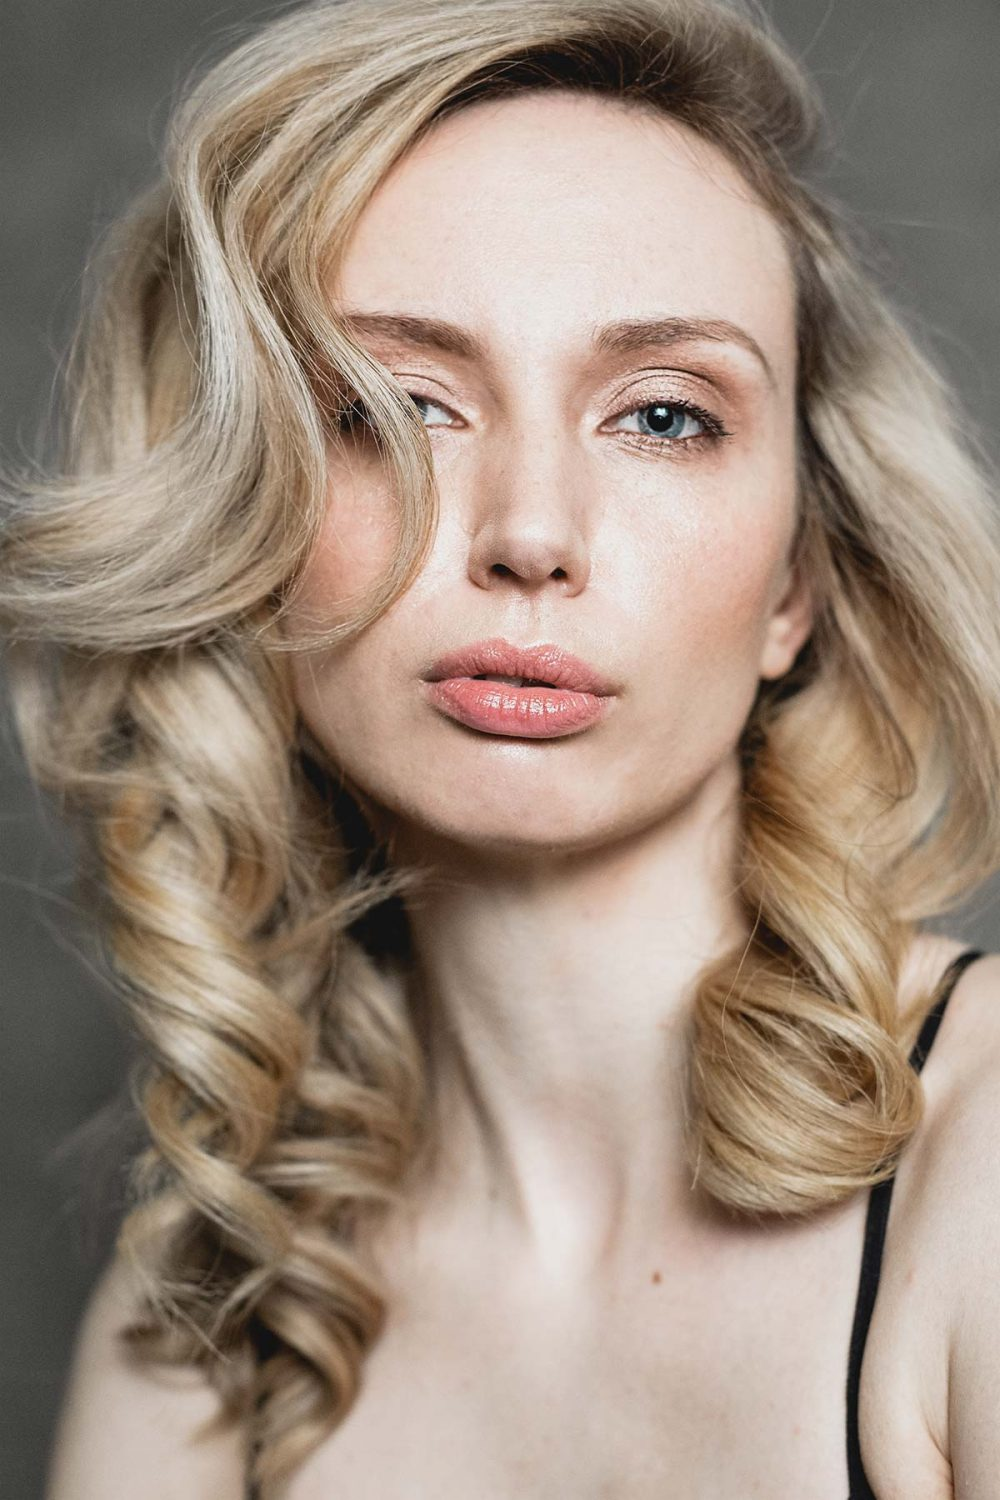 Blonde woman's elegant headshot